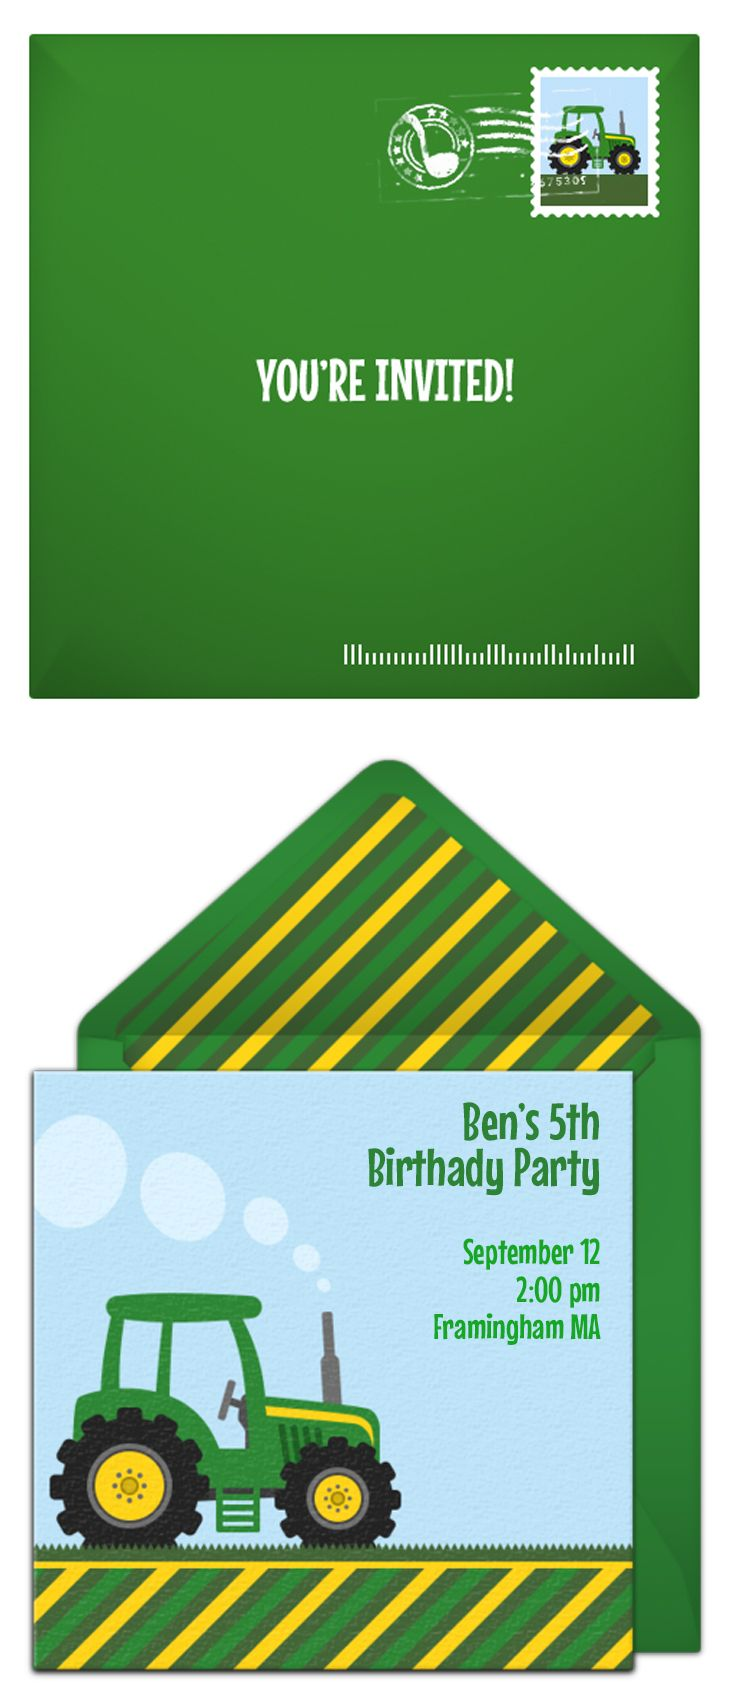 Free Tractor Invitation We Love This Online Design For A Birthday Great Digital Alternative To DIY Paper Options